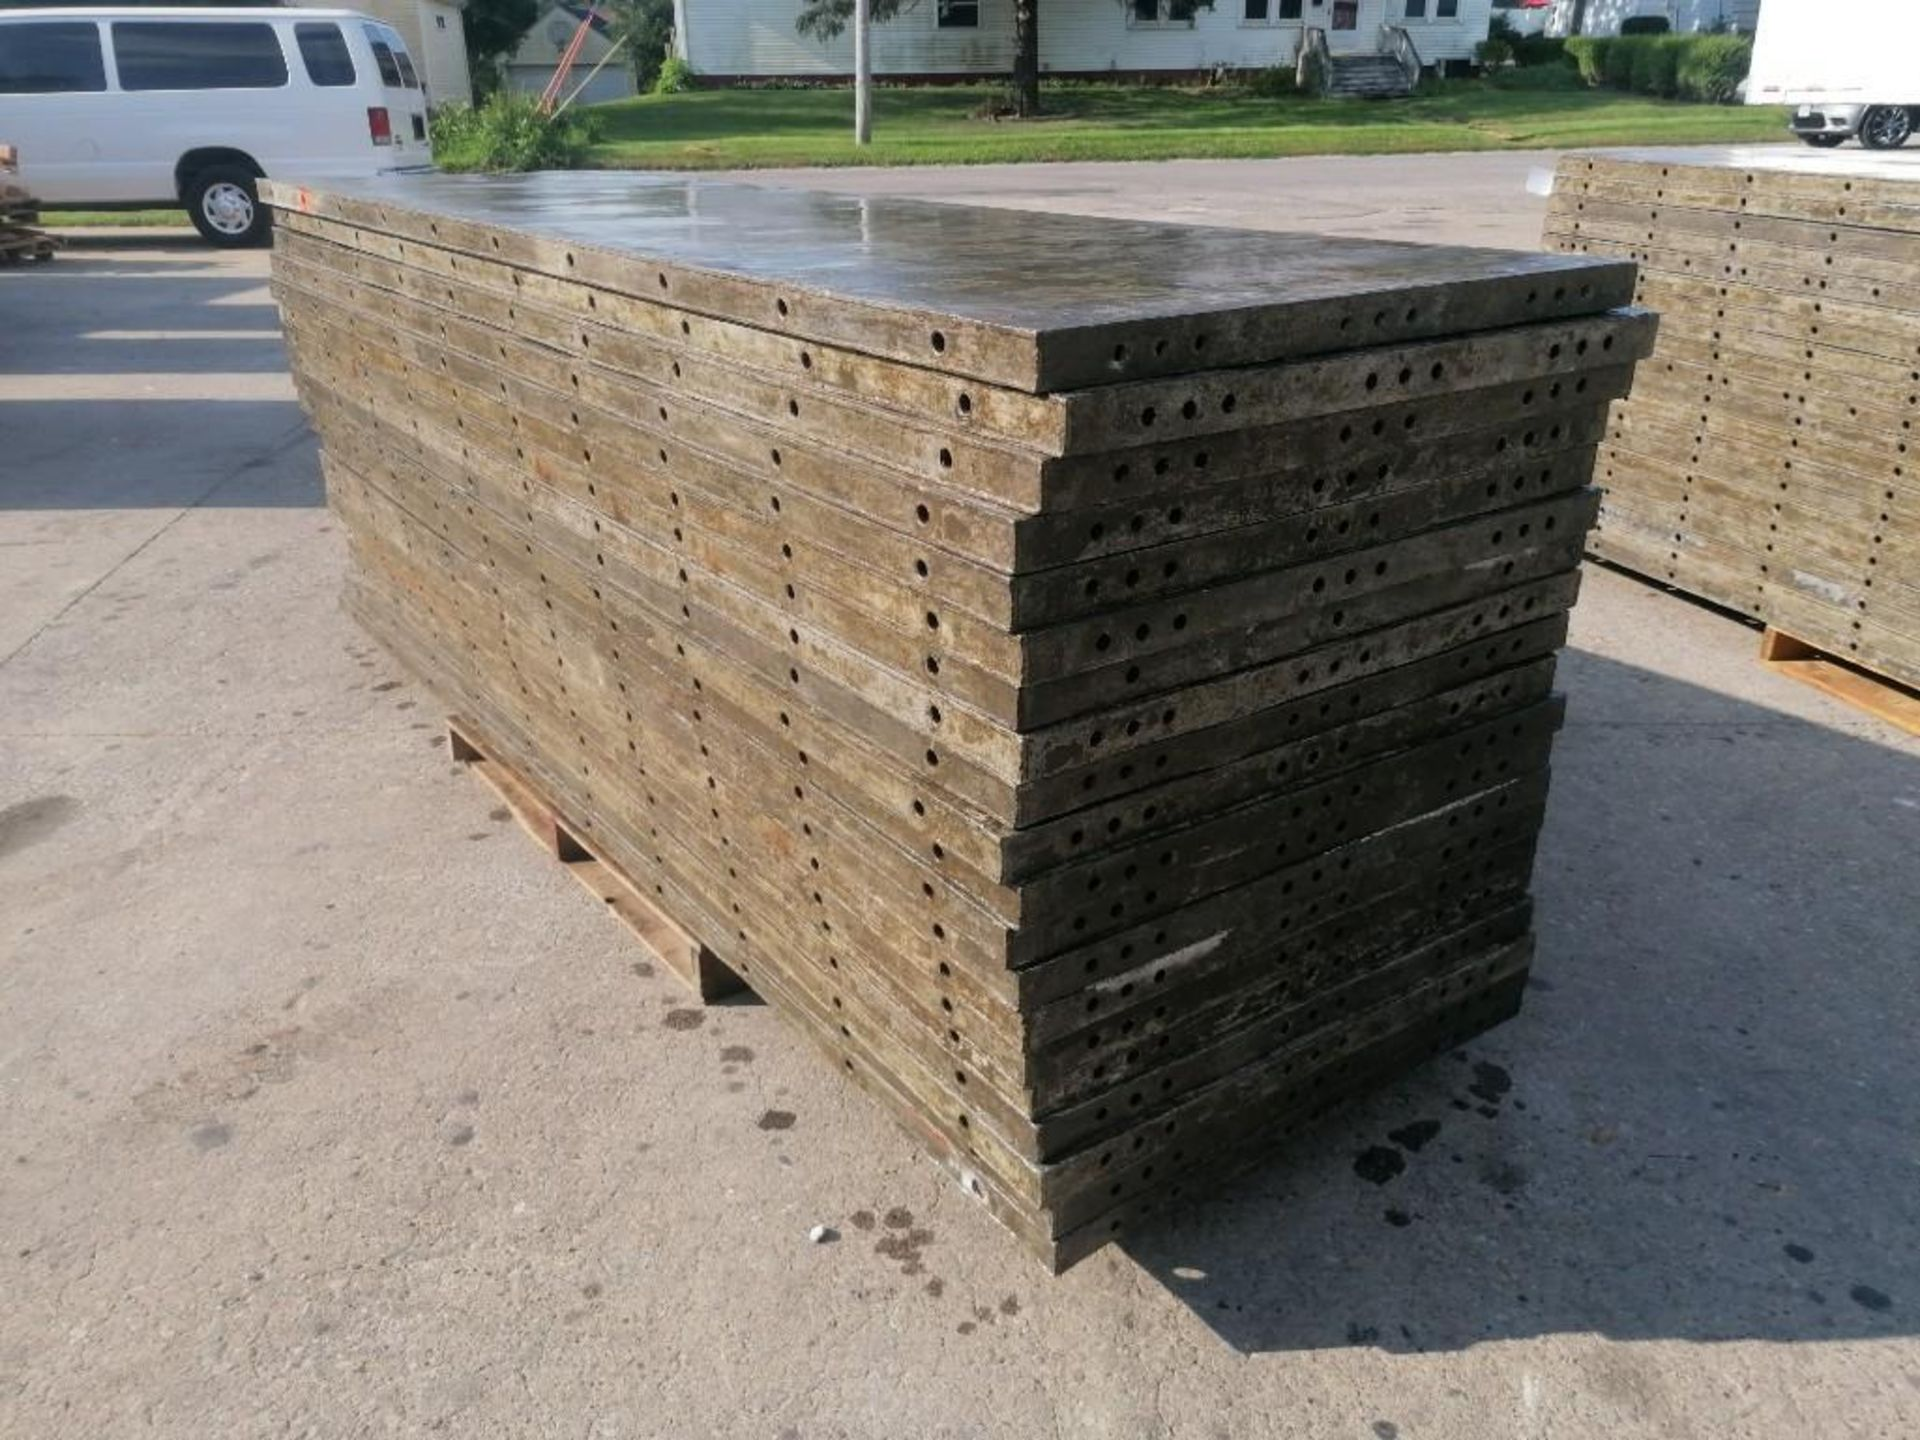 Lot 122 - (20) 3' x 10' Wall-Ties Aluminum Concrete Forms, Smooth 6-12 Hole Pattern. Located at 301 E Henry